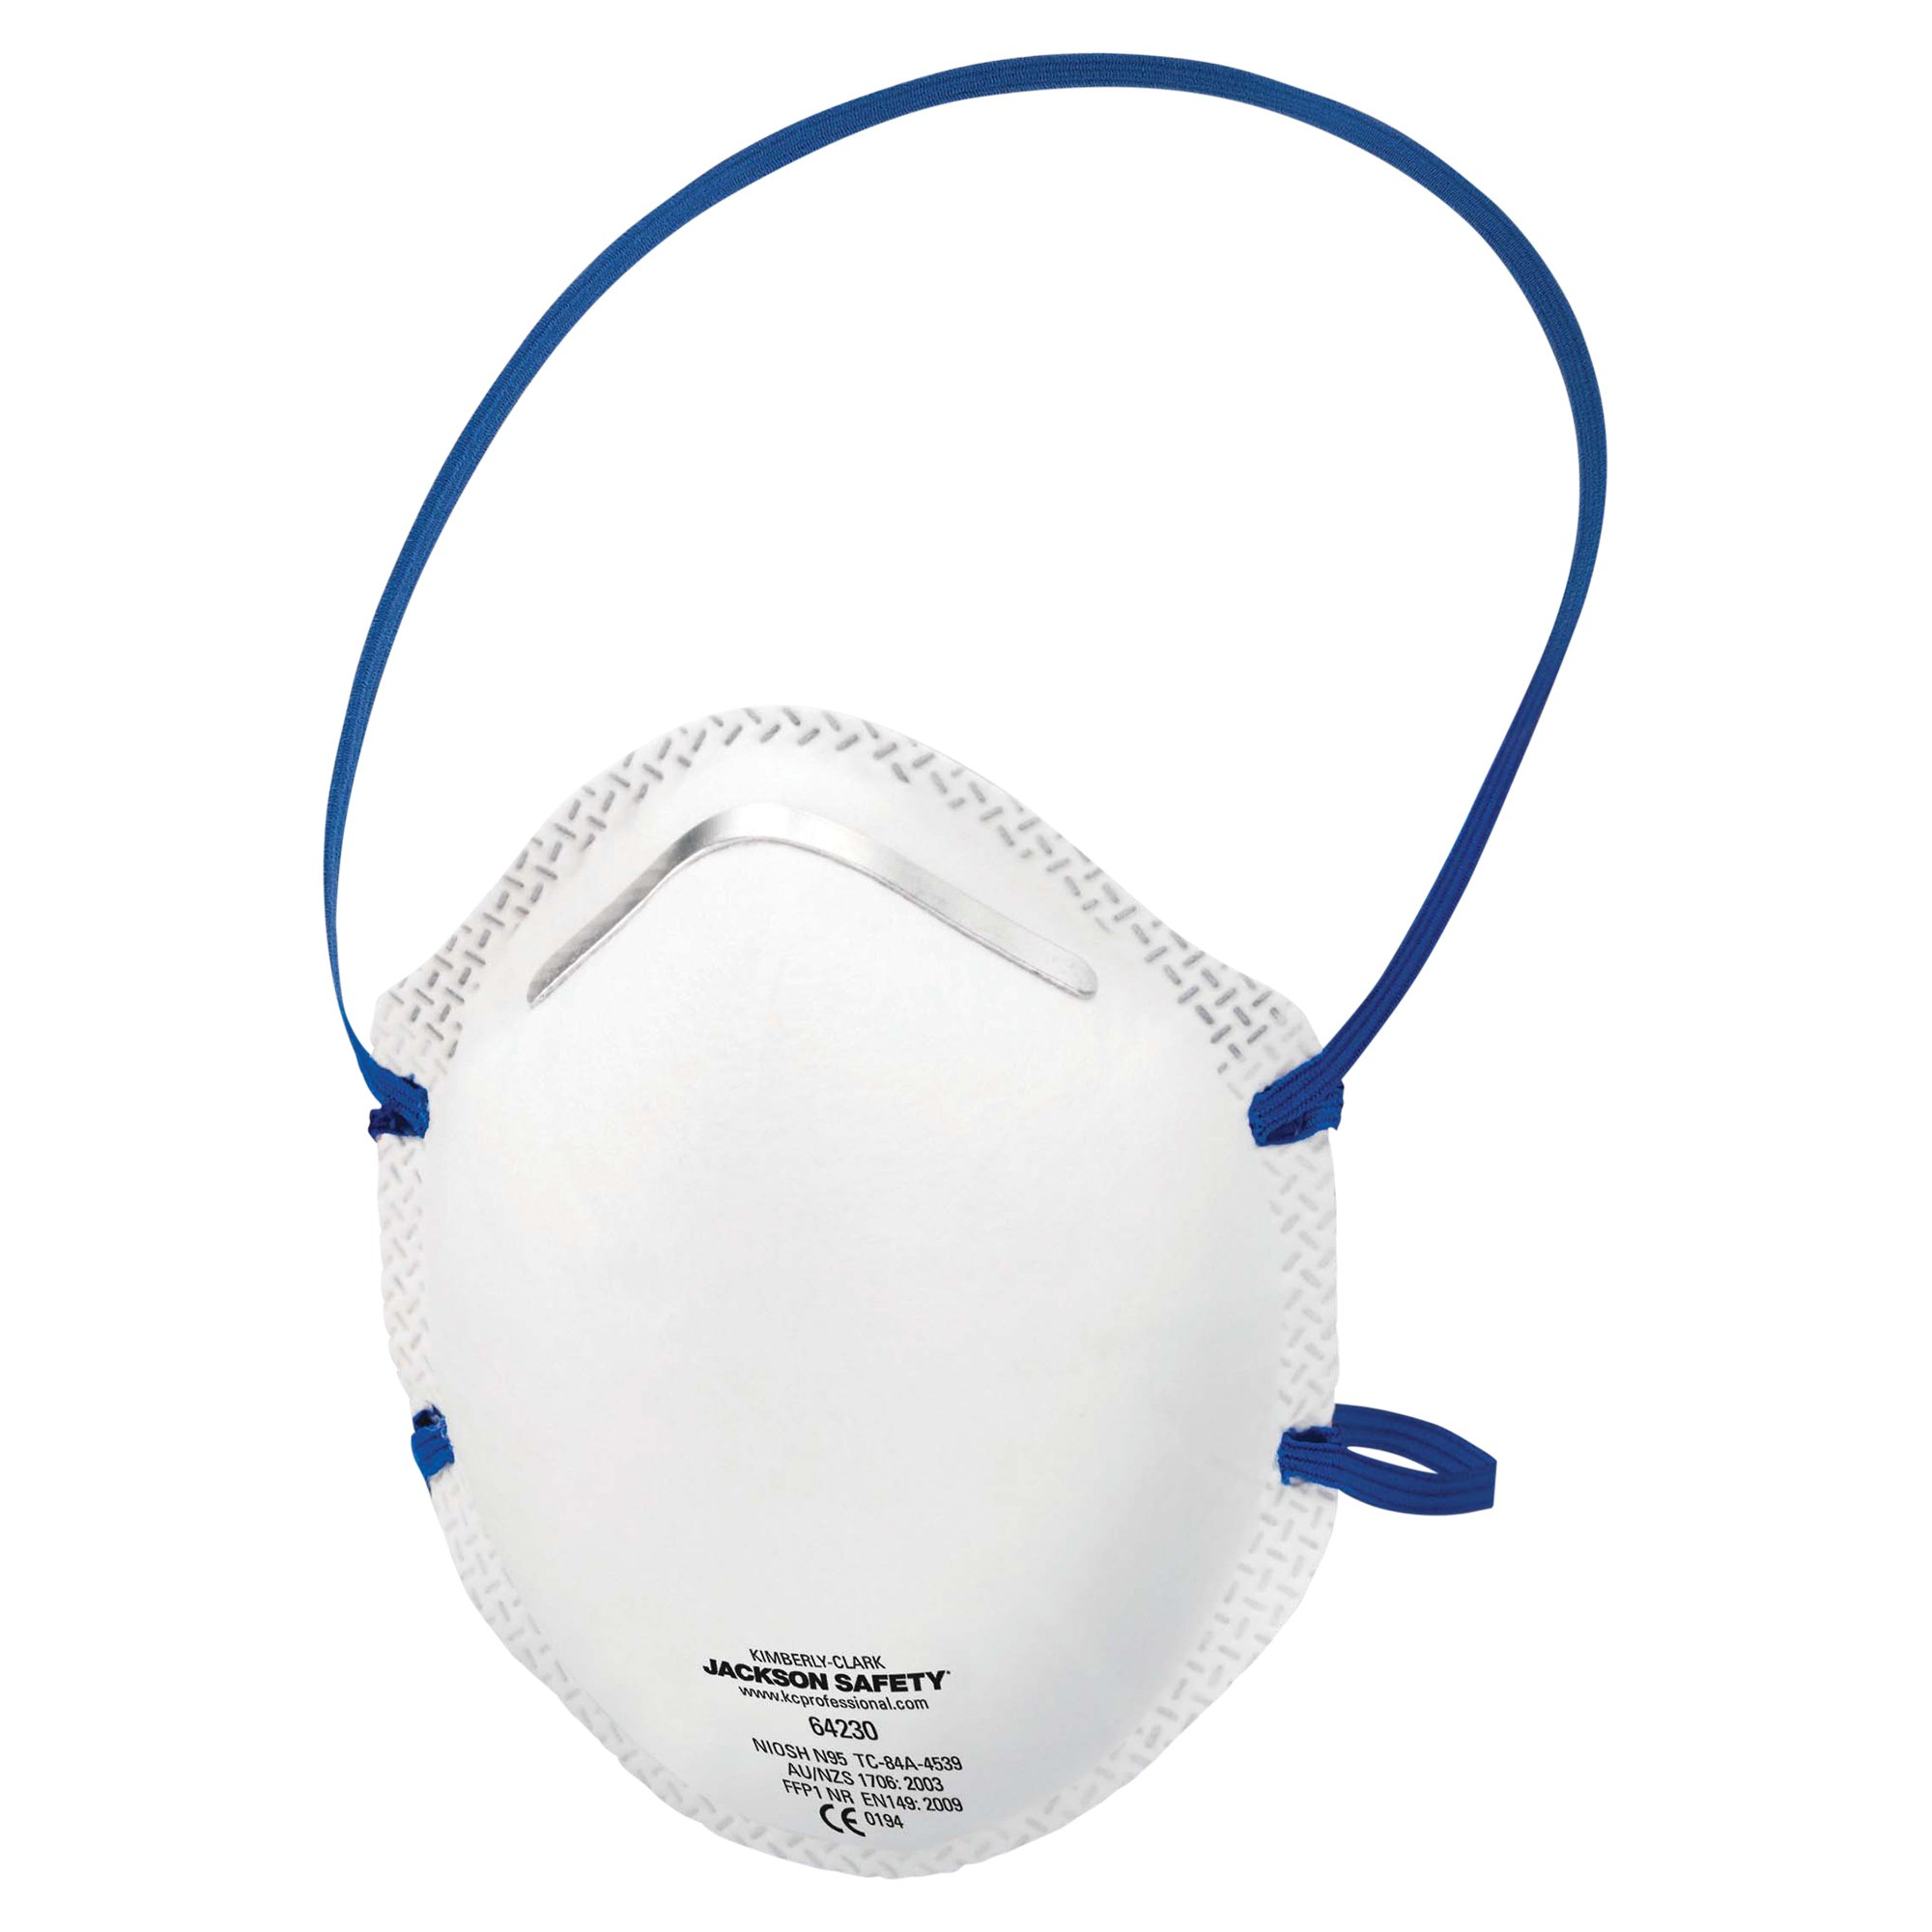 Jackson Safety R10 N95 Particulate Respirator (64230), No Valve, White with Blue Strap, 160 Respirators/Case, 20/Box, 8 Boxes